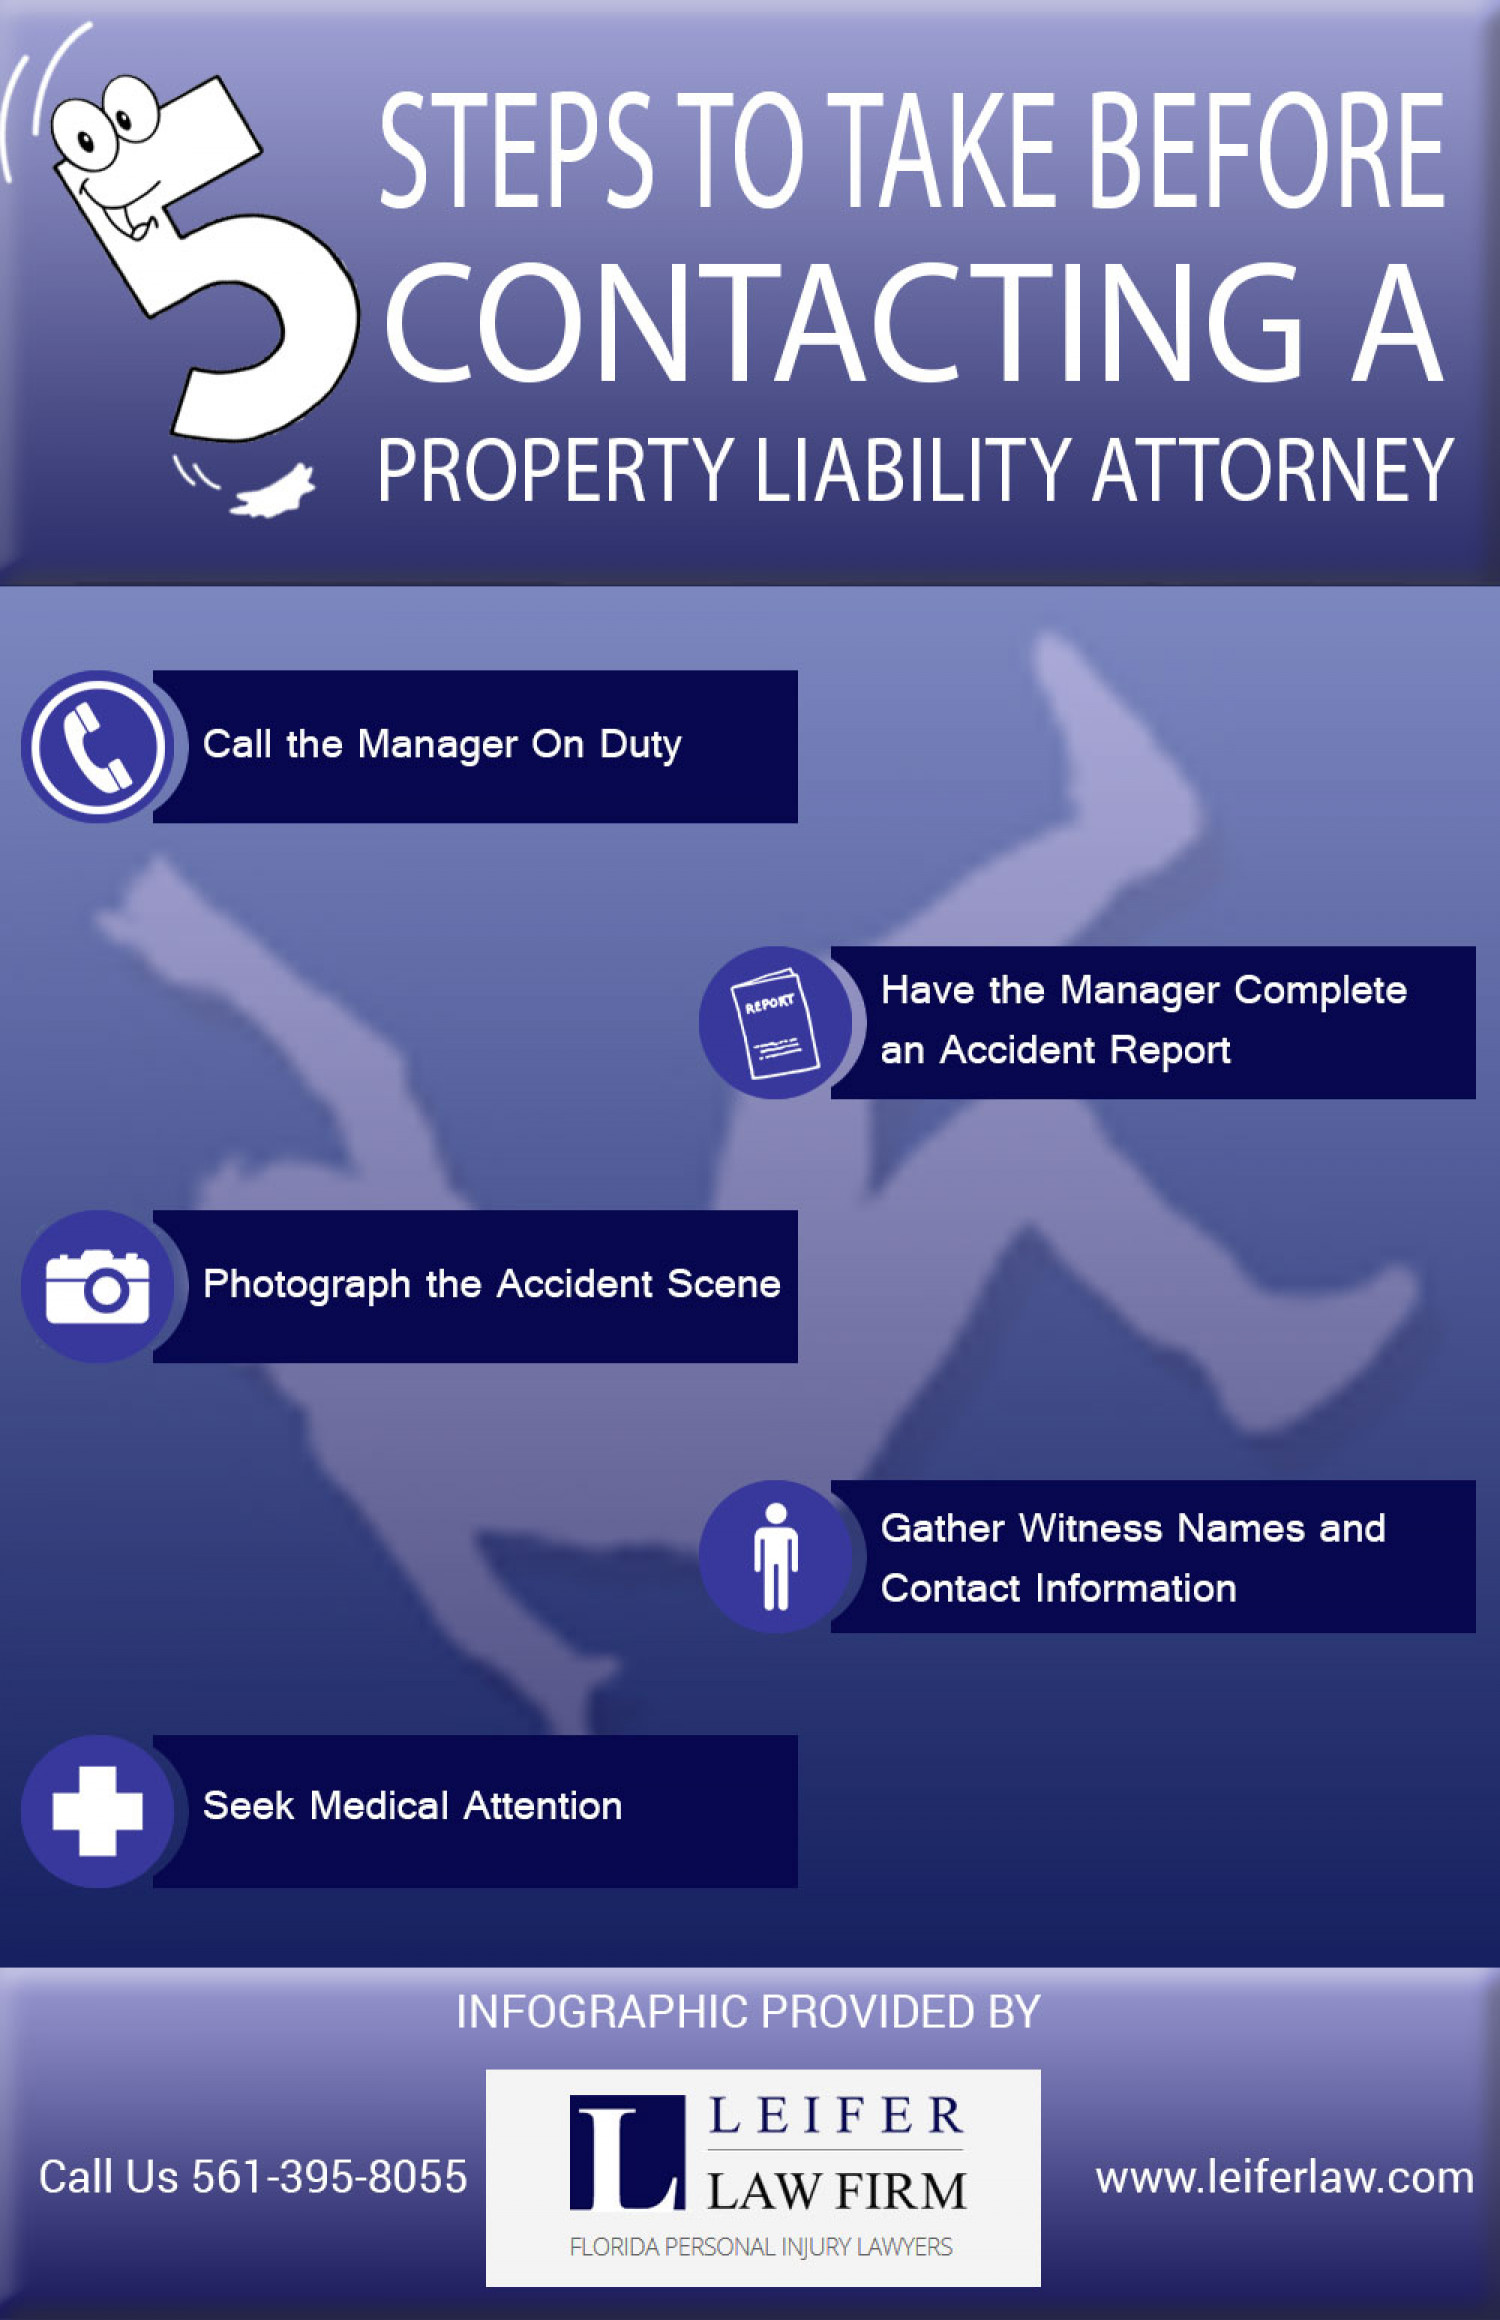 Basic Steps to Take Before Contacting a Property Liability Attorney Infographic